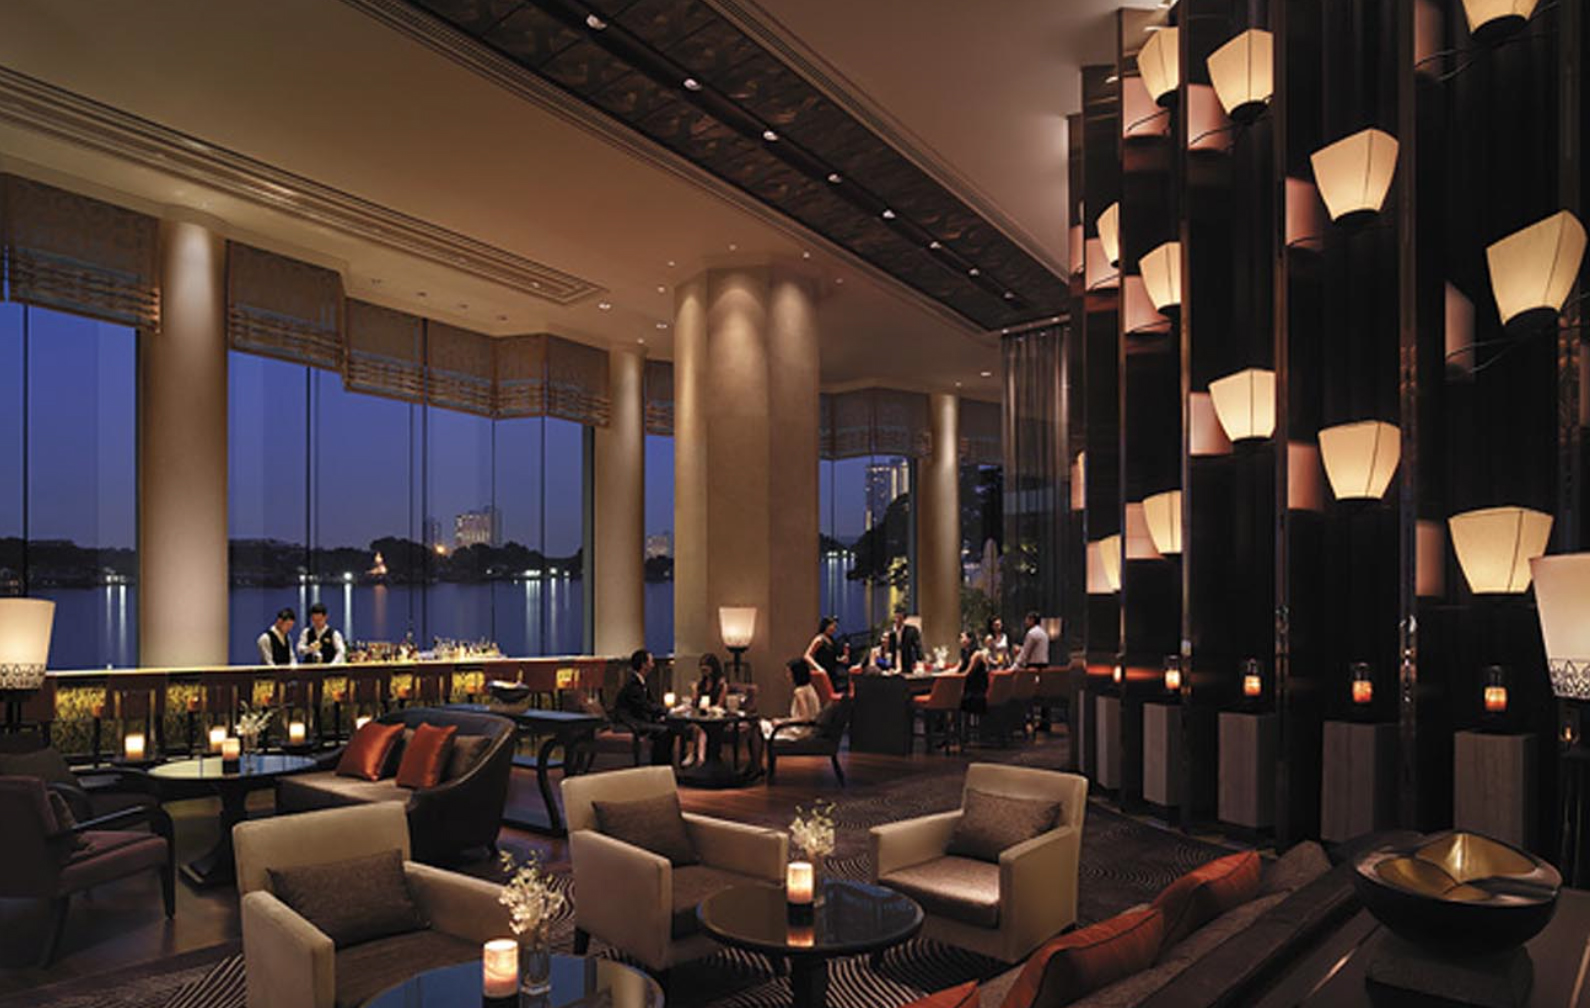 Shangri-La_Bangkok_-_The_Long_Bar.jpg